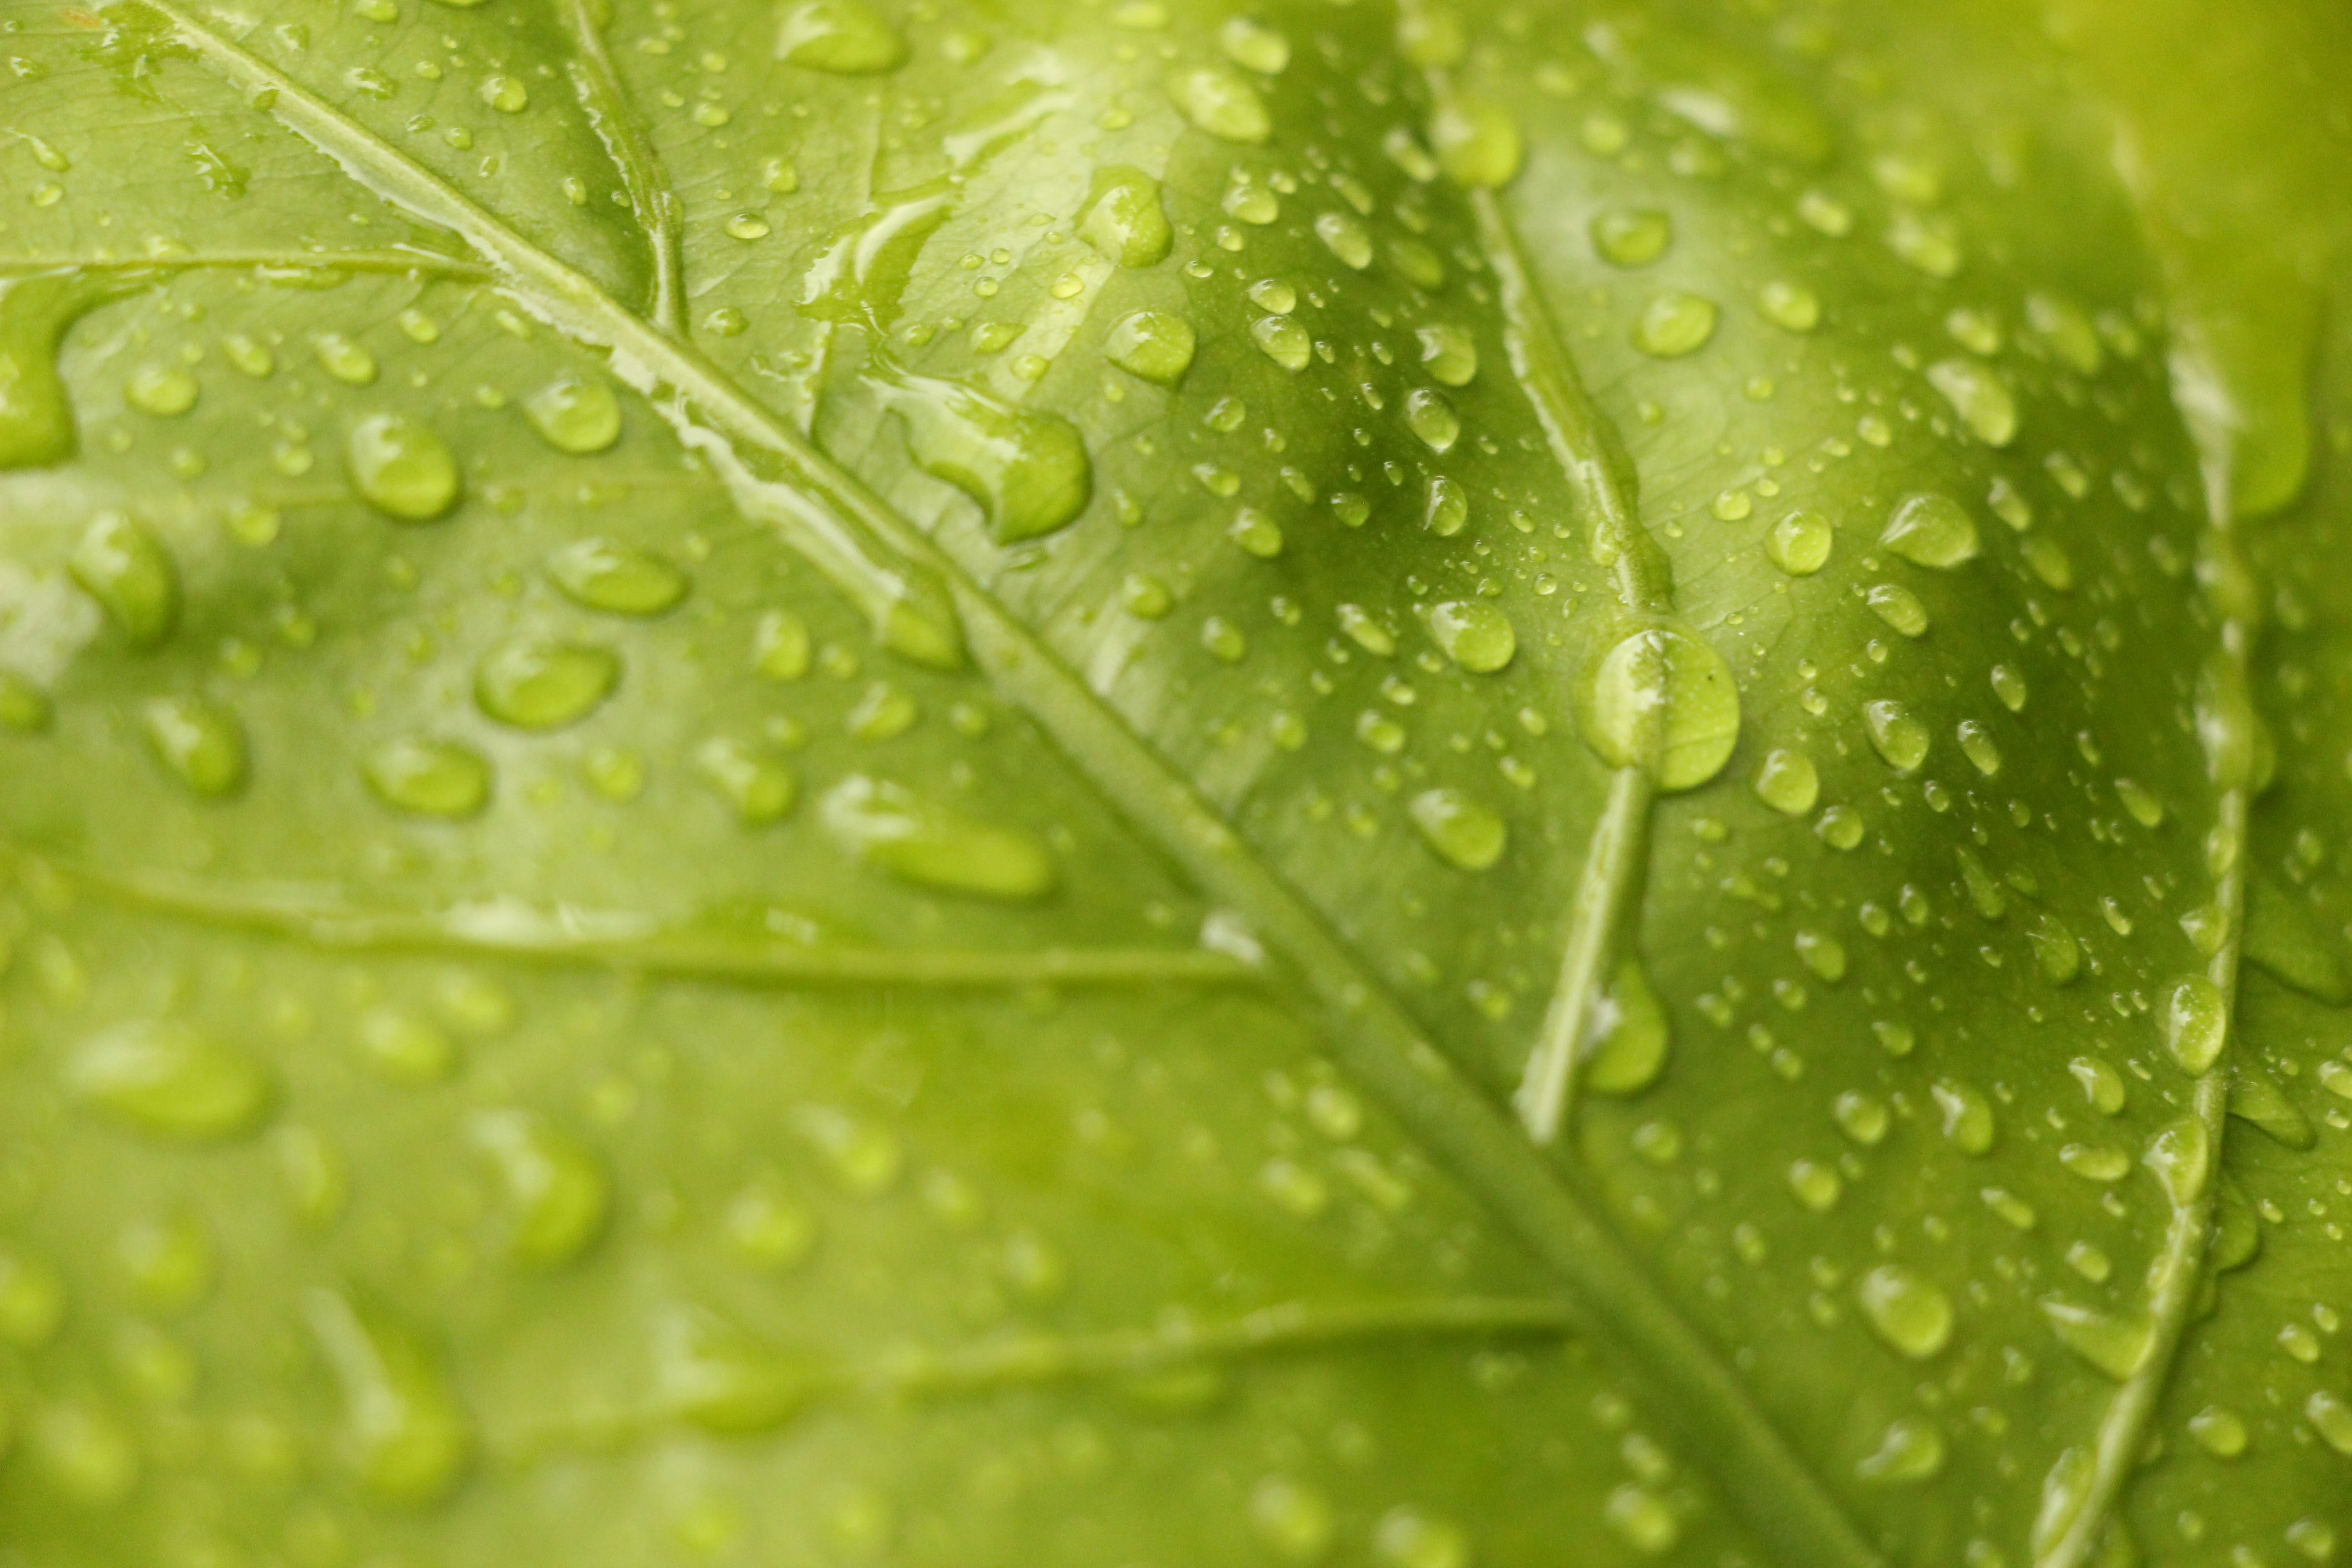 Closeup View of Green Leaf With Rain Drops